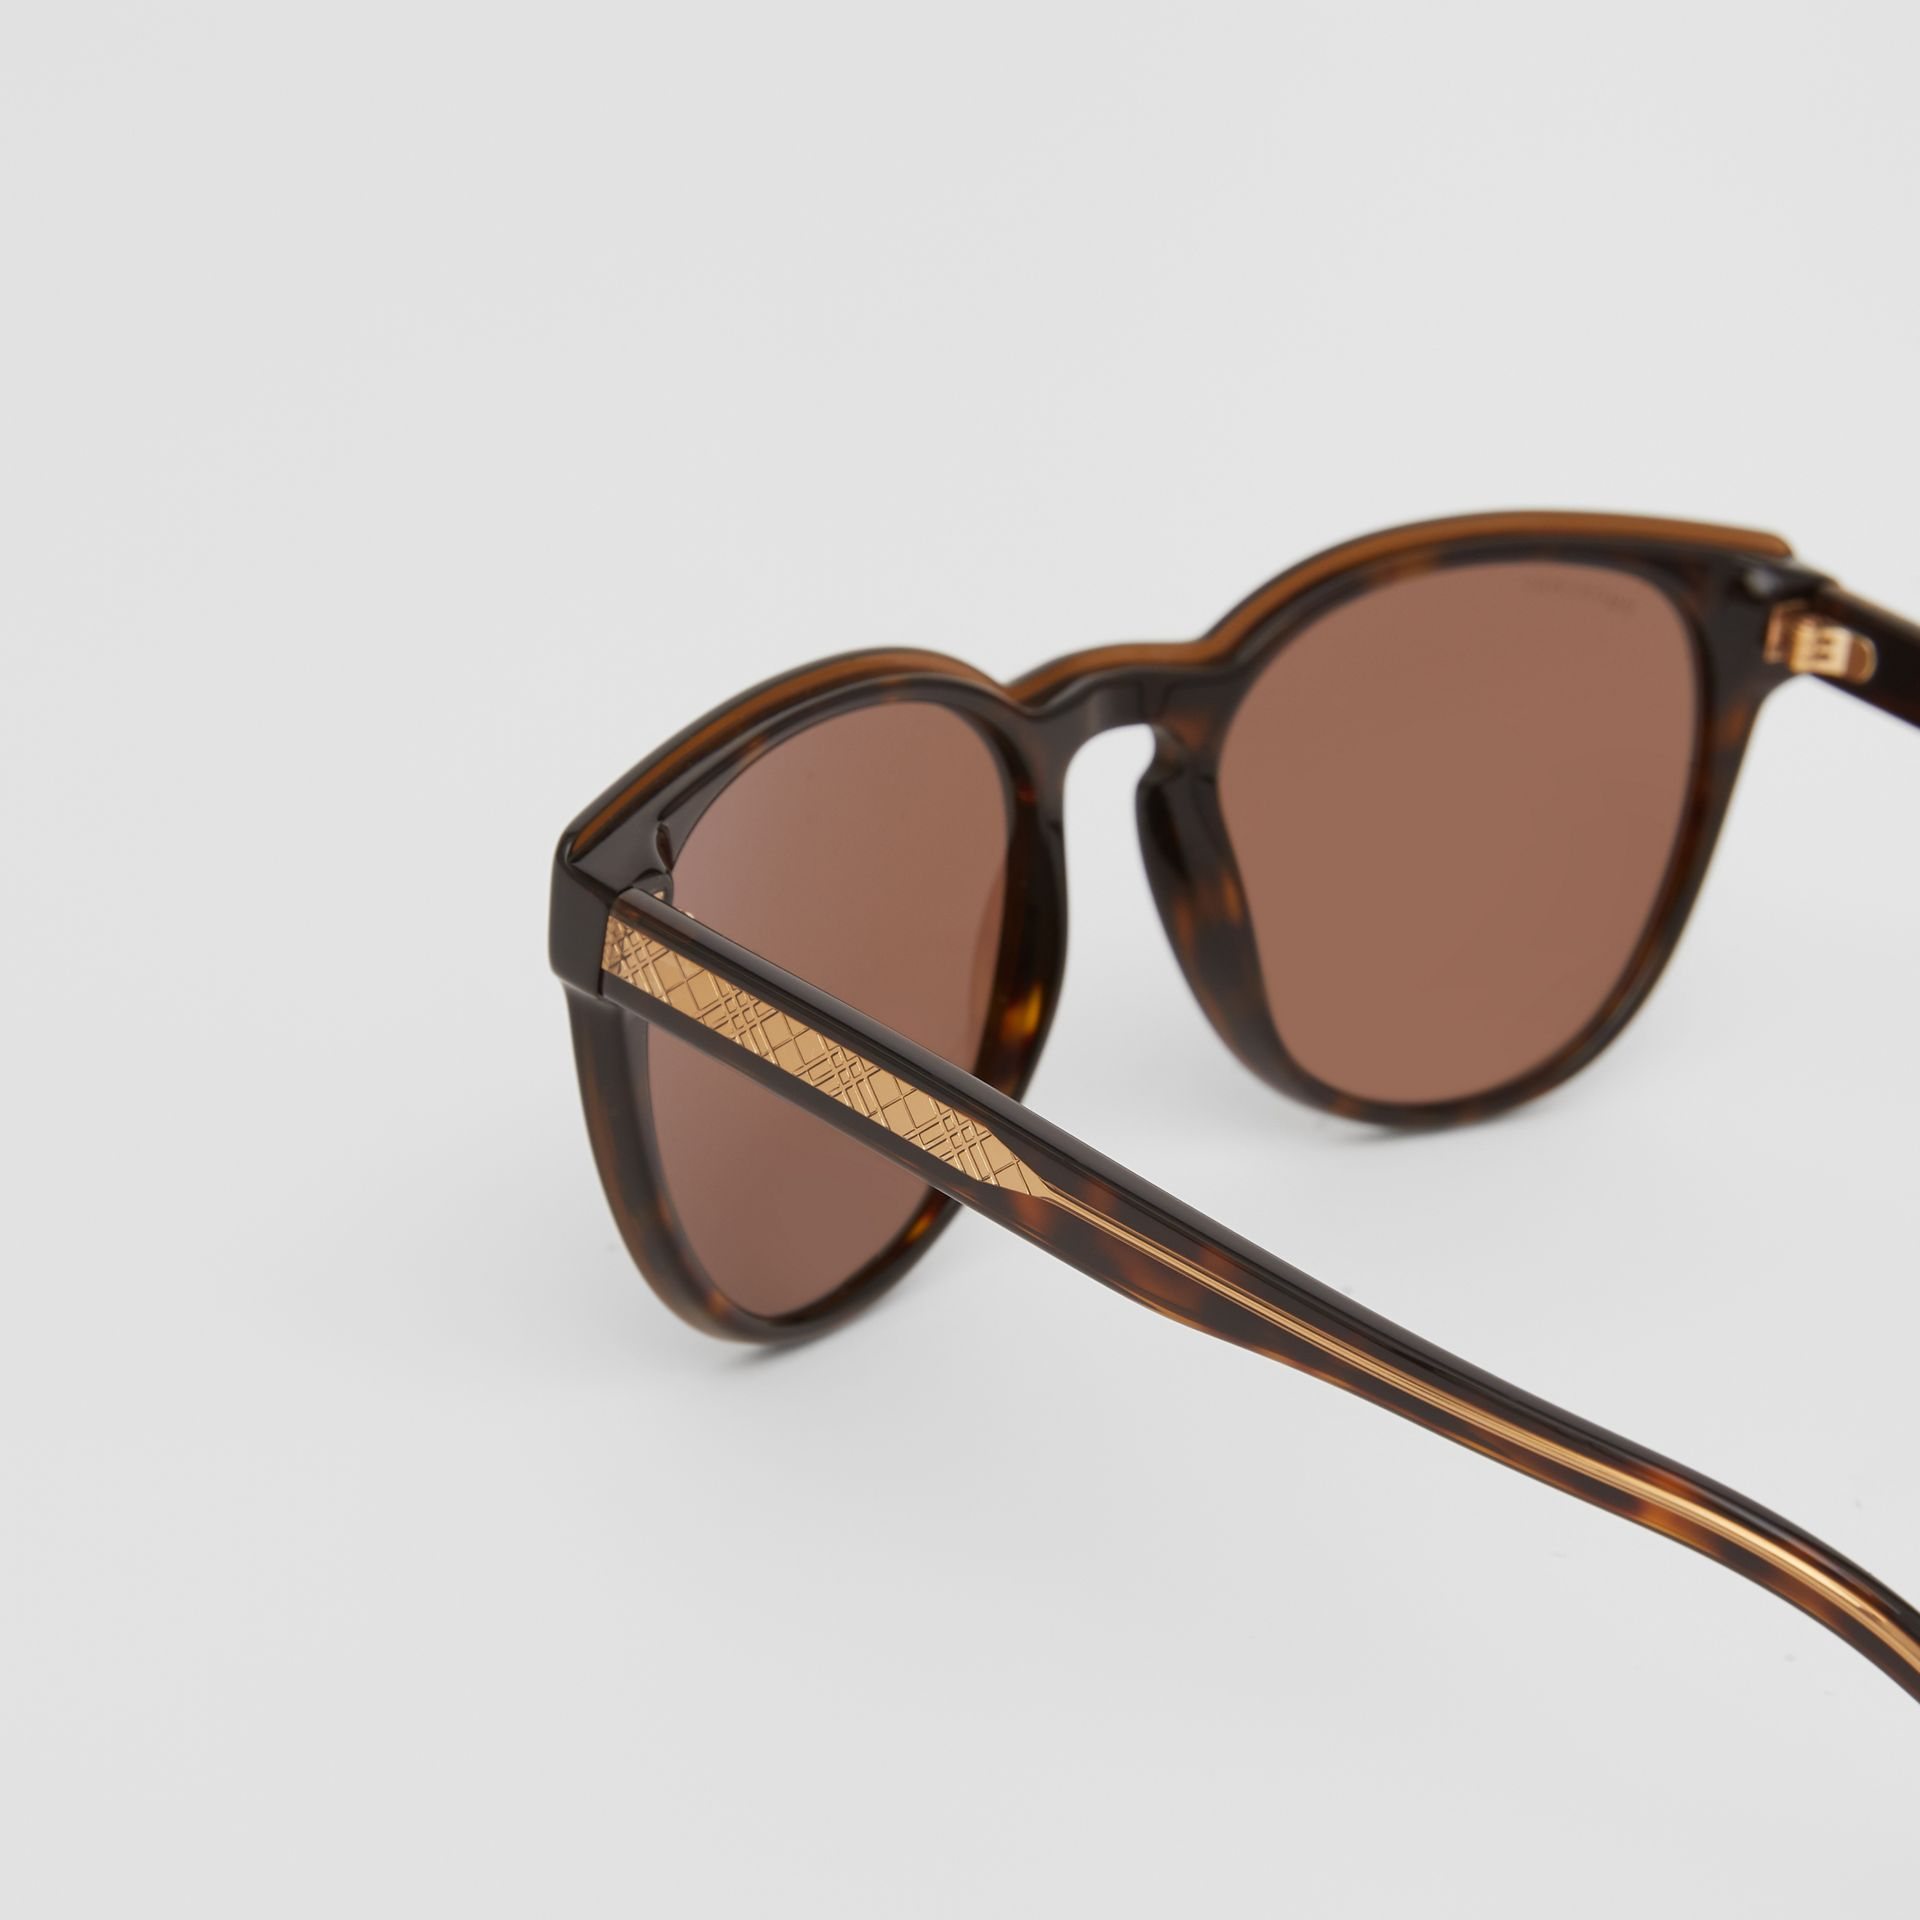 Round Frame Sunglasses in Tortoiseshell - Men | Burberry - gallery image 1